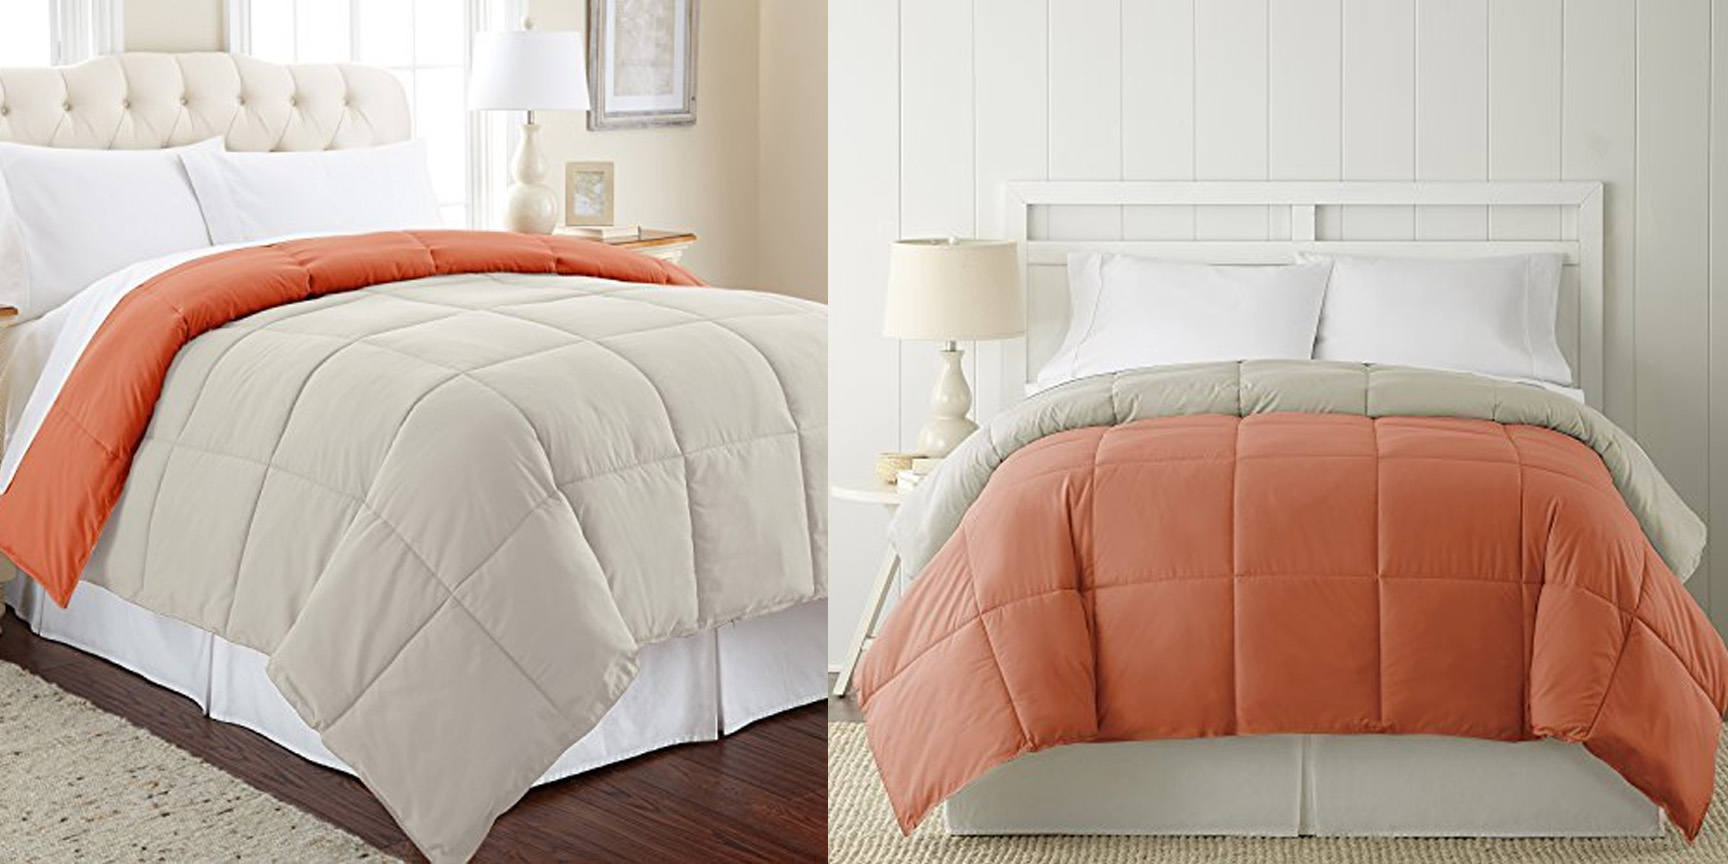 Switch up your bedding for spring w/ this reversible comforter at $17 Prime shipped from Amazon